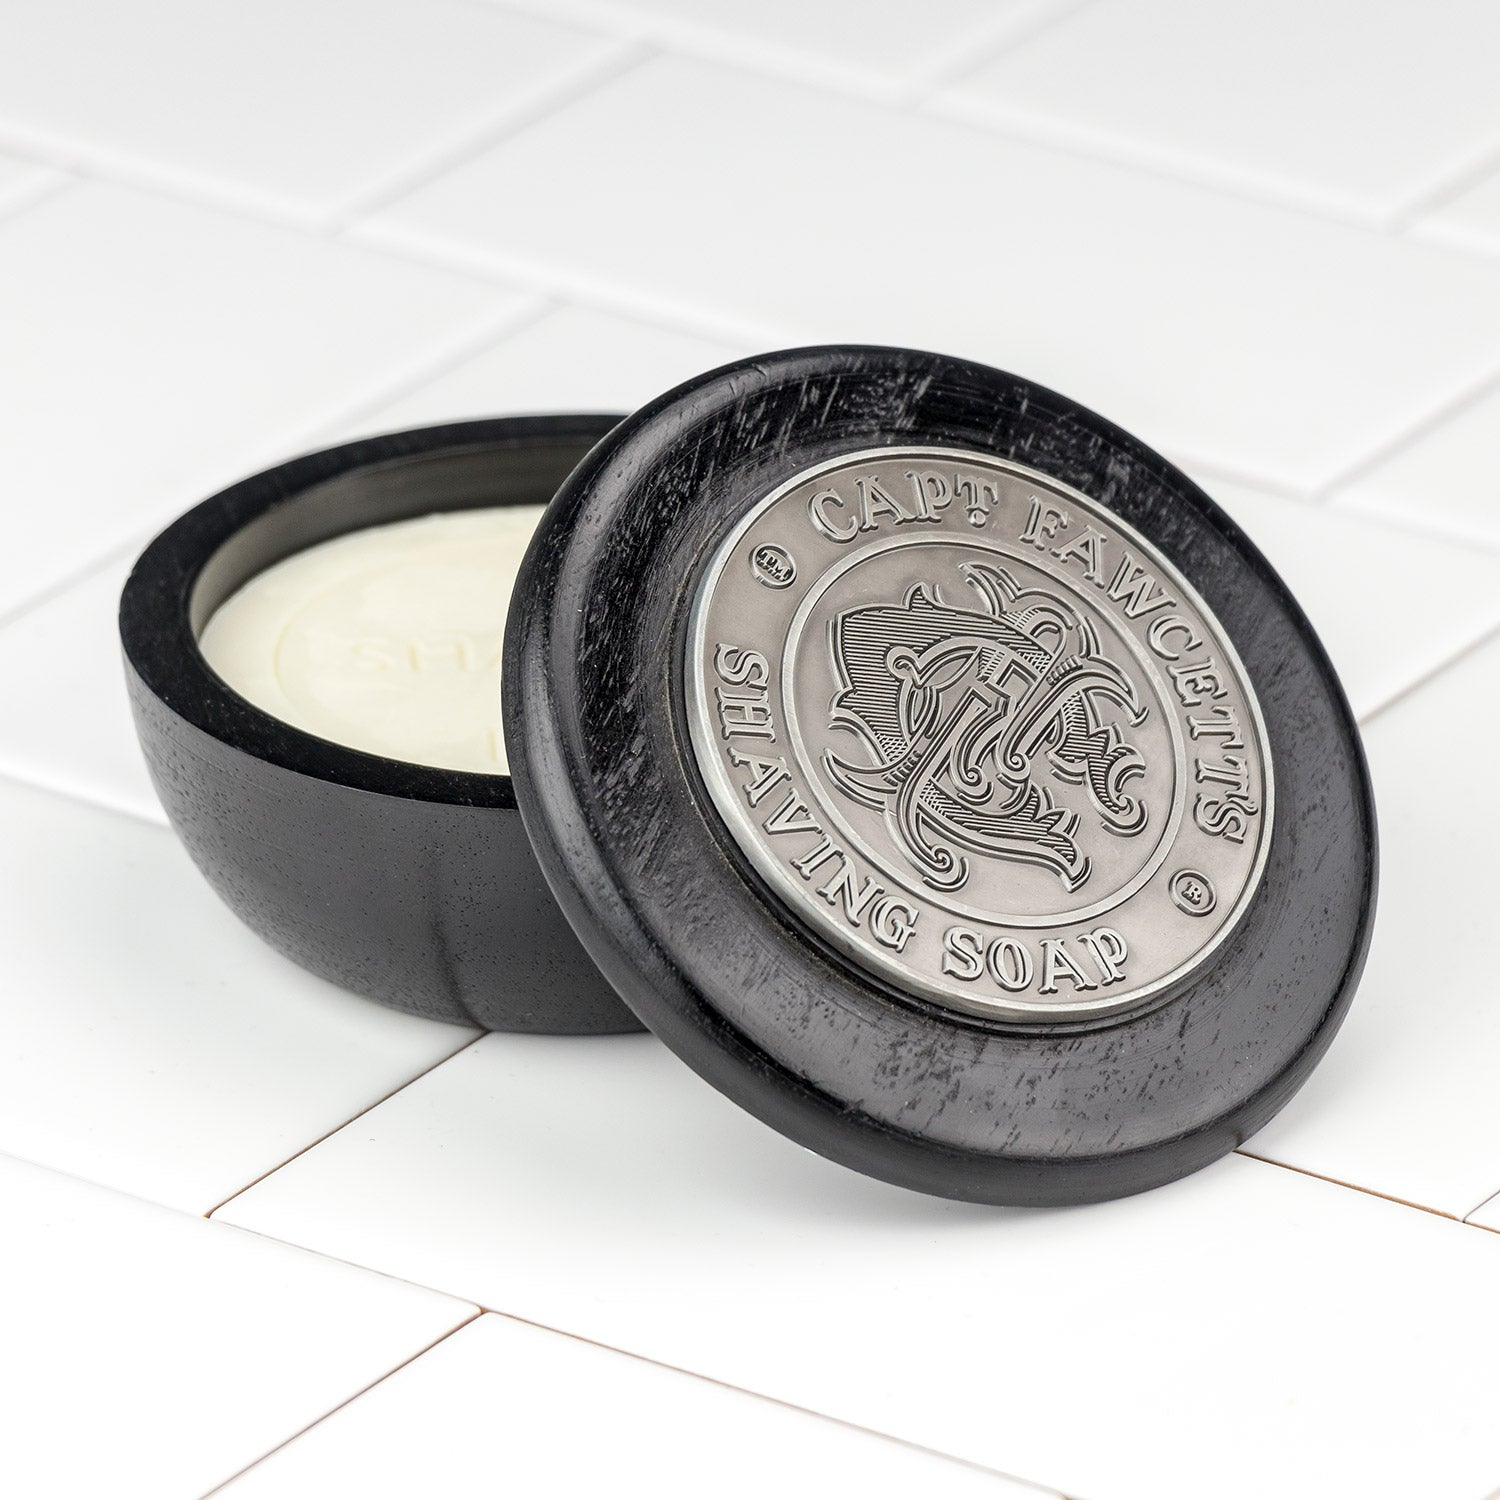 Captain Fawcett's Luxurious Shaving Soap (110g/3.88oz)